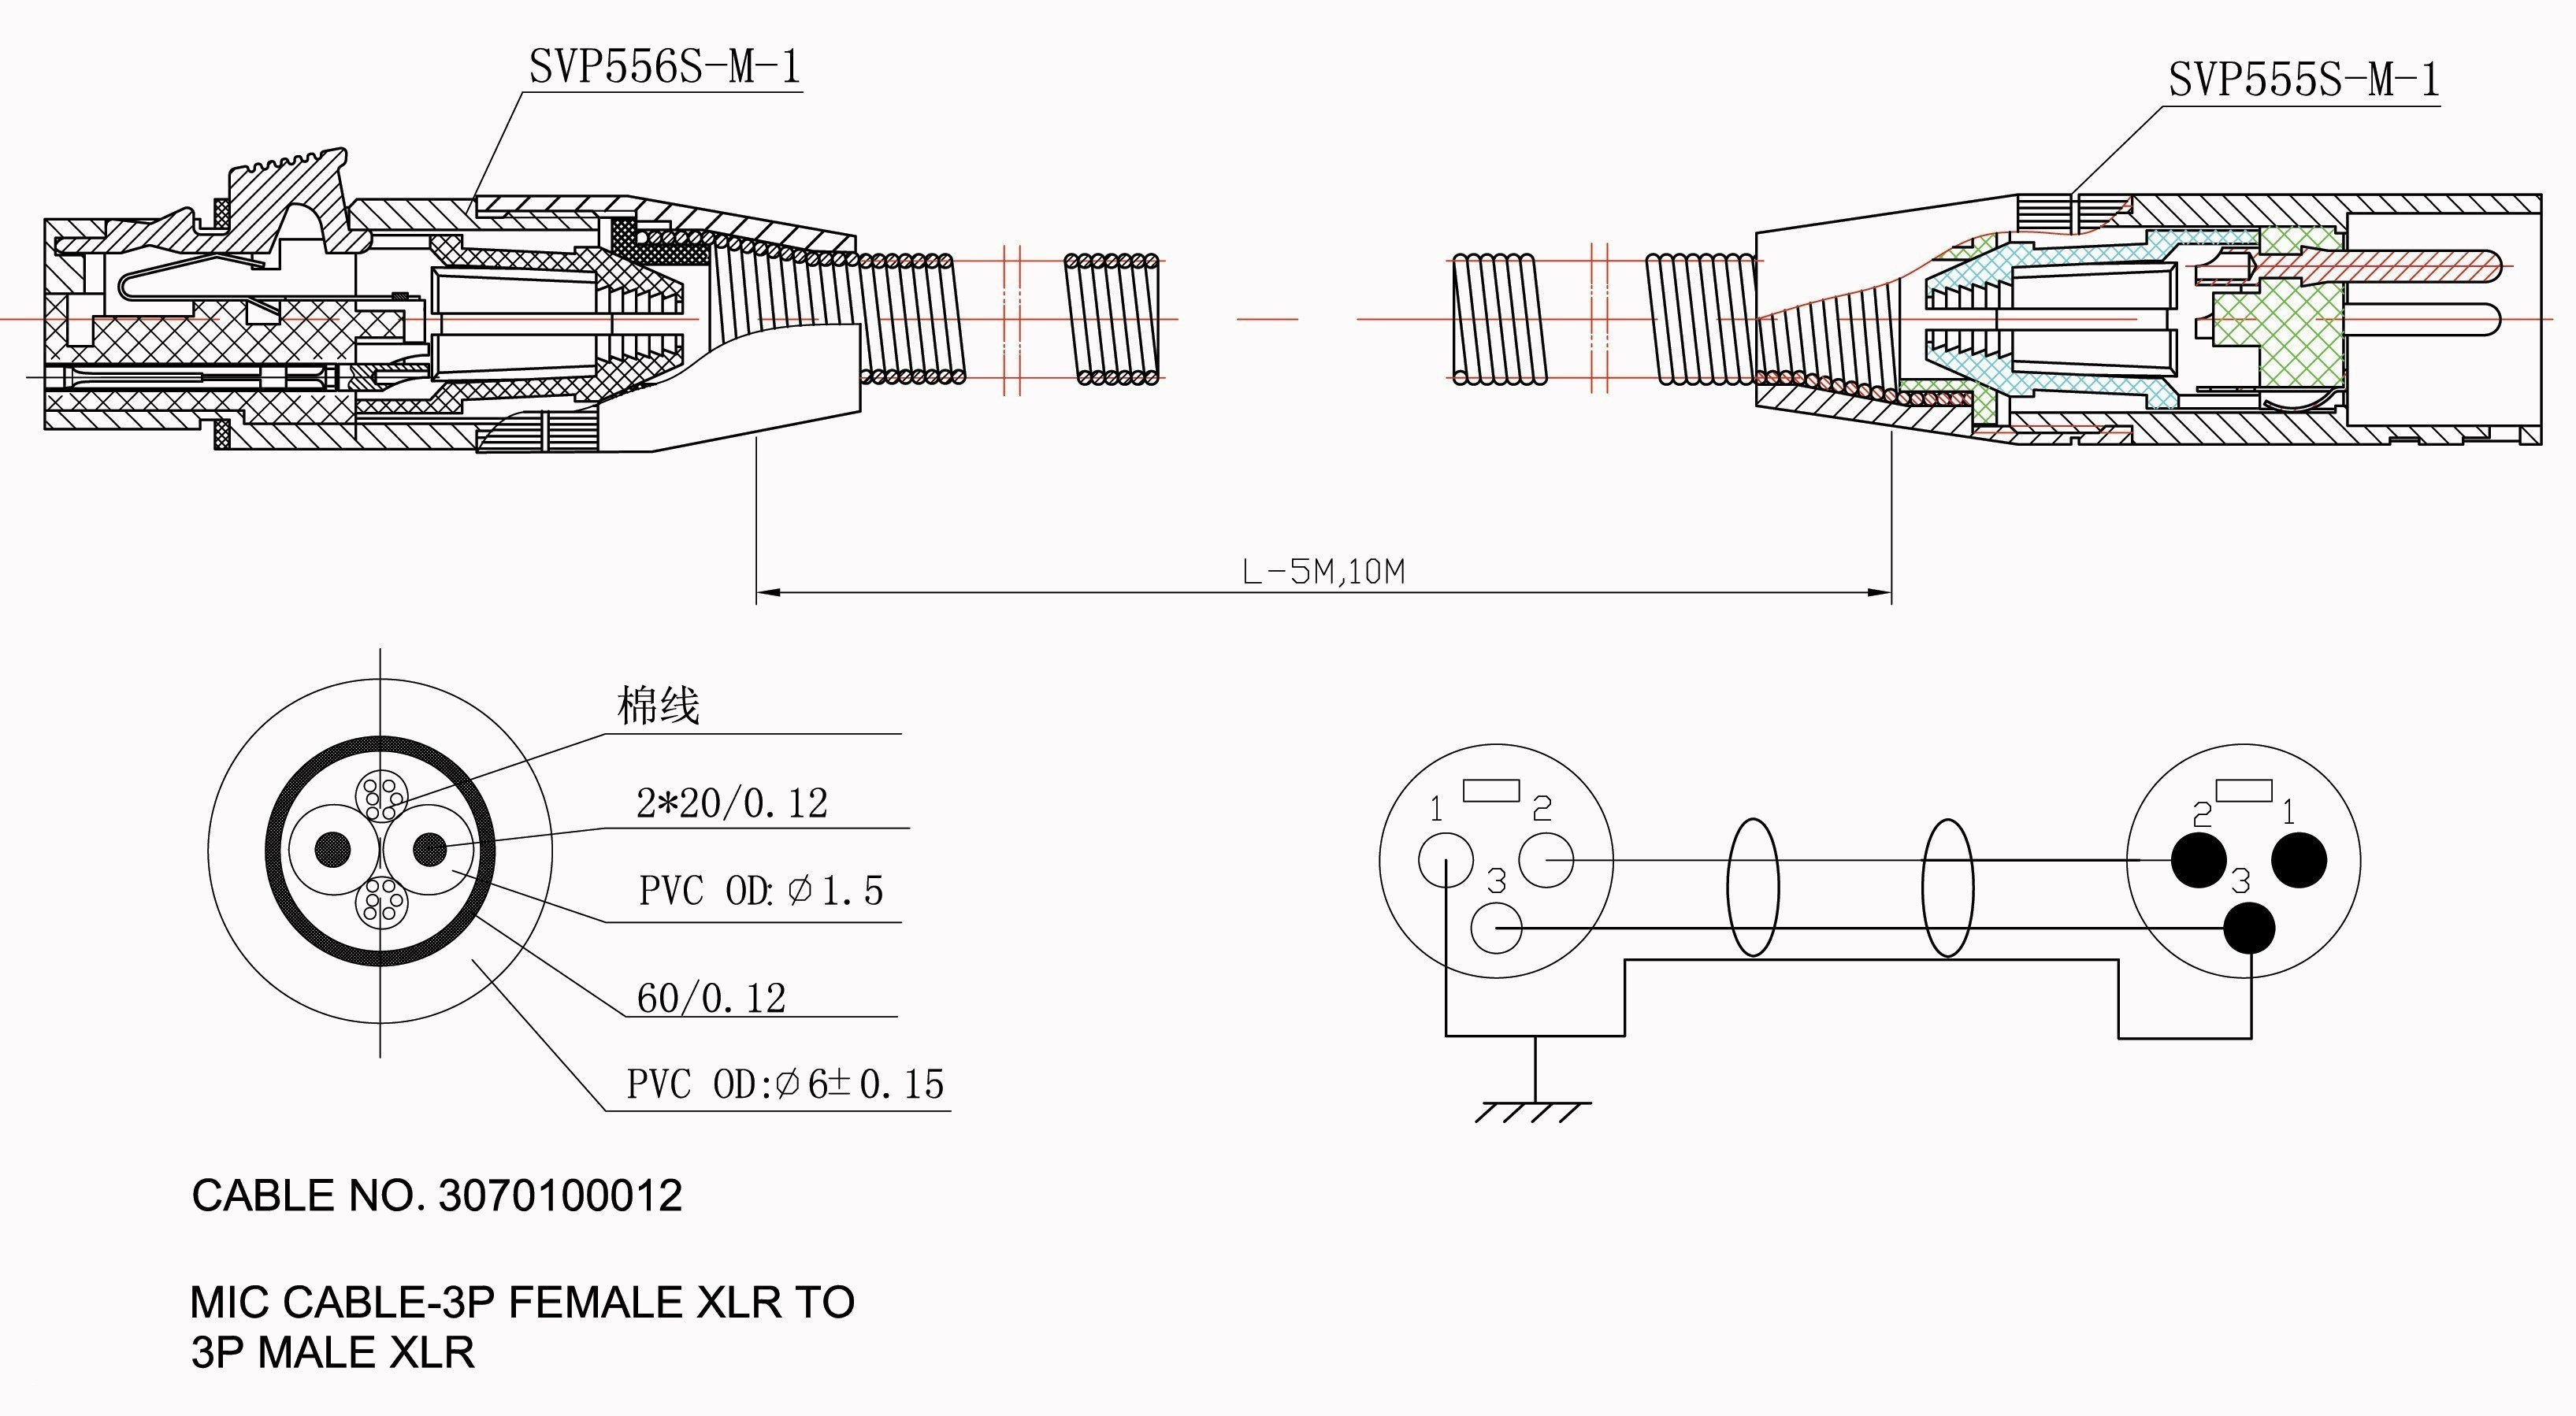 2005 Chrysler town and Country Instrument Cluster Wiring Diagrams 6 0l Engine Diagram Of 2005 Chrysler town and Country Instrument Cluster Wiring Diagrams